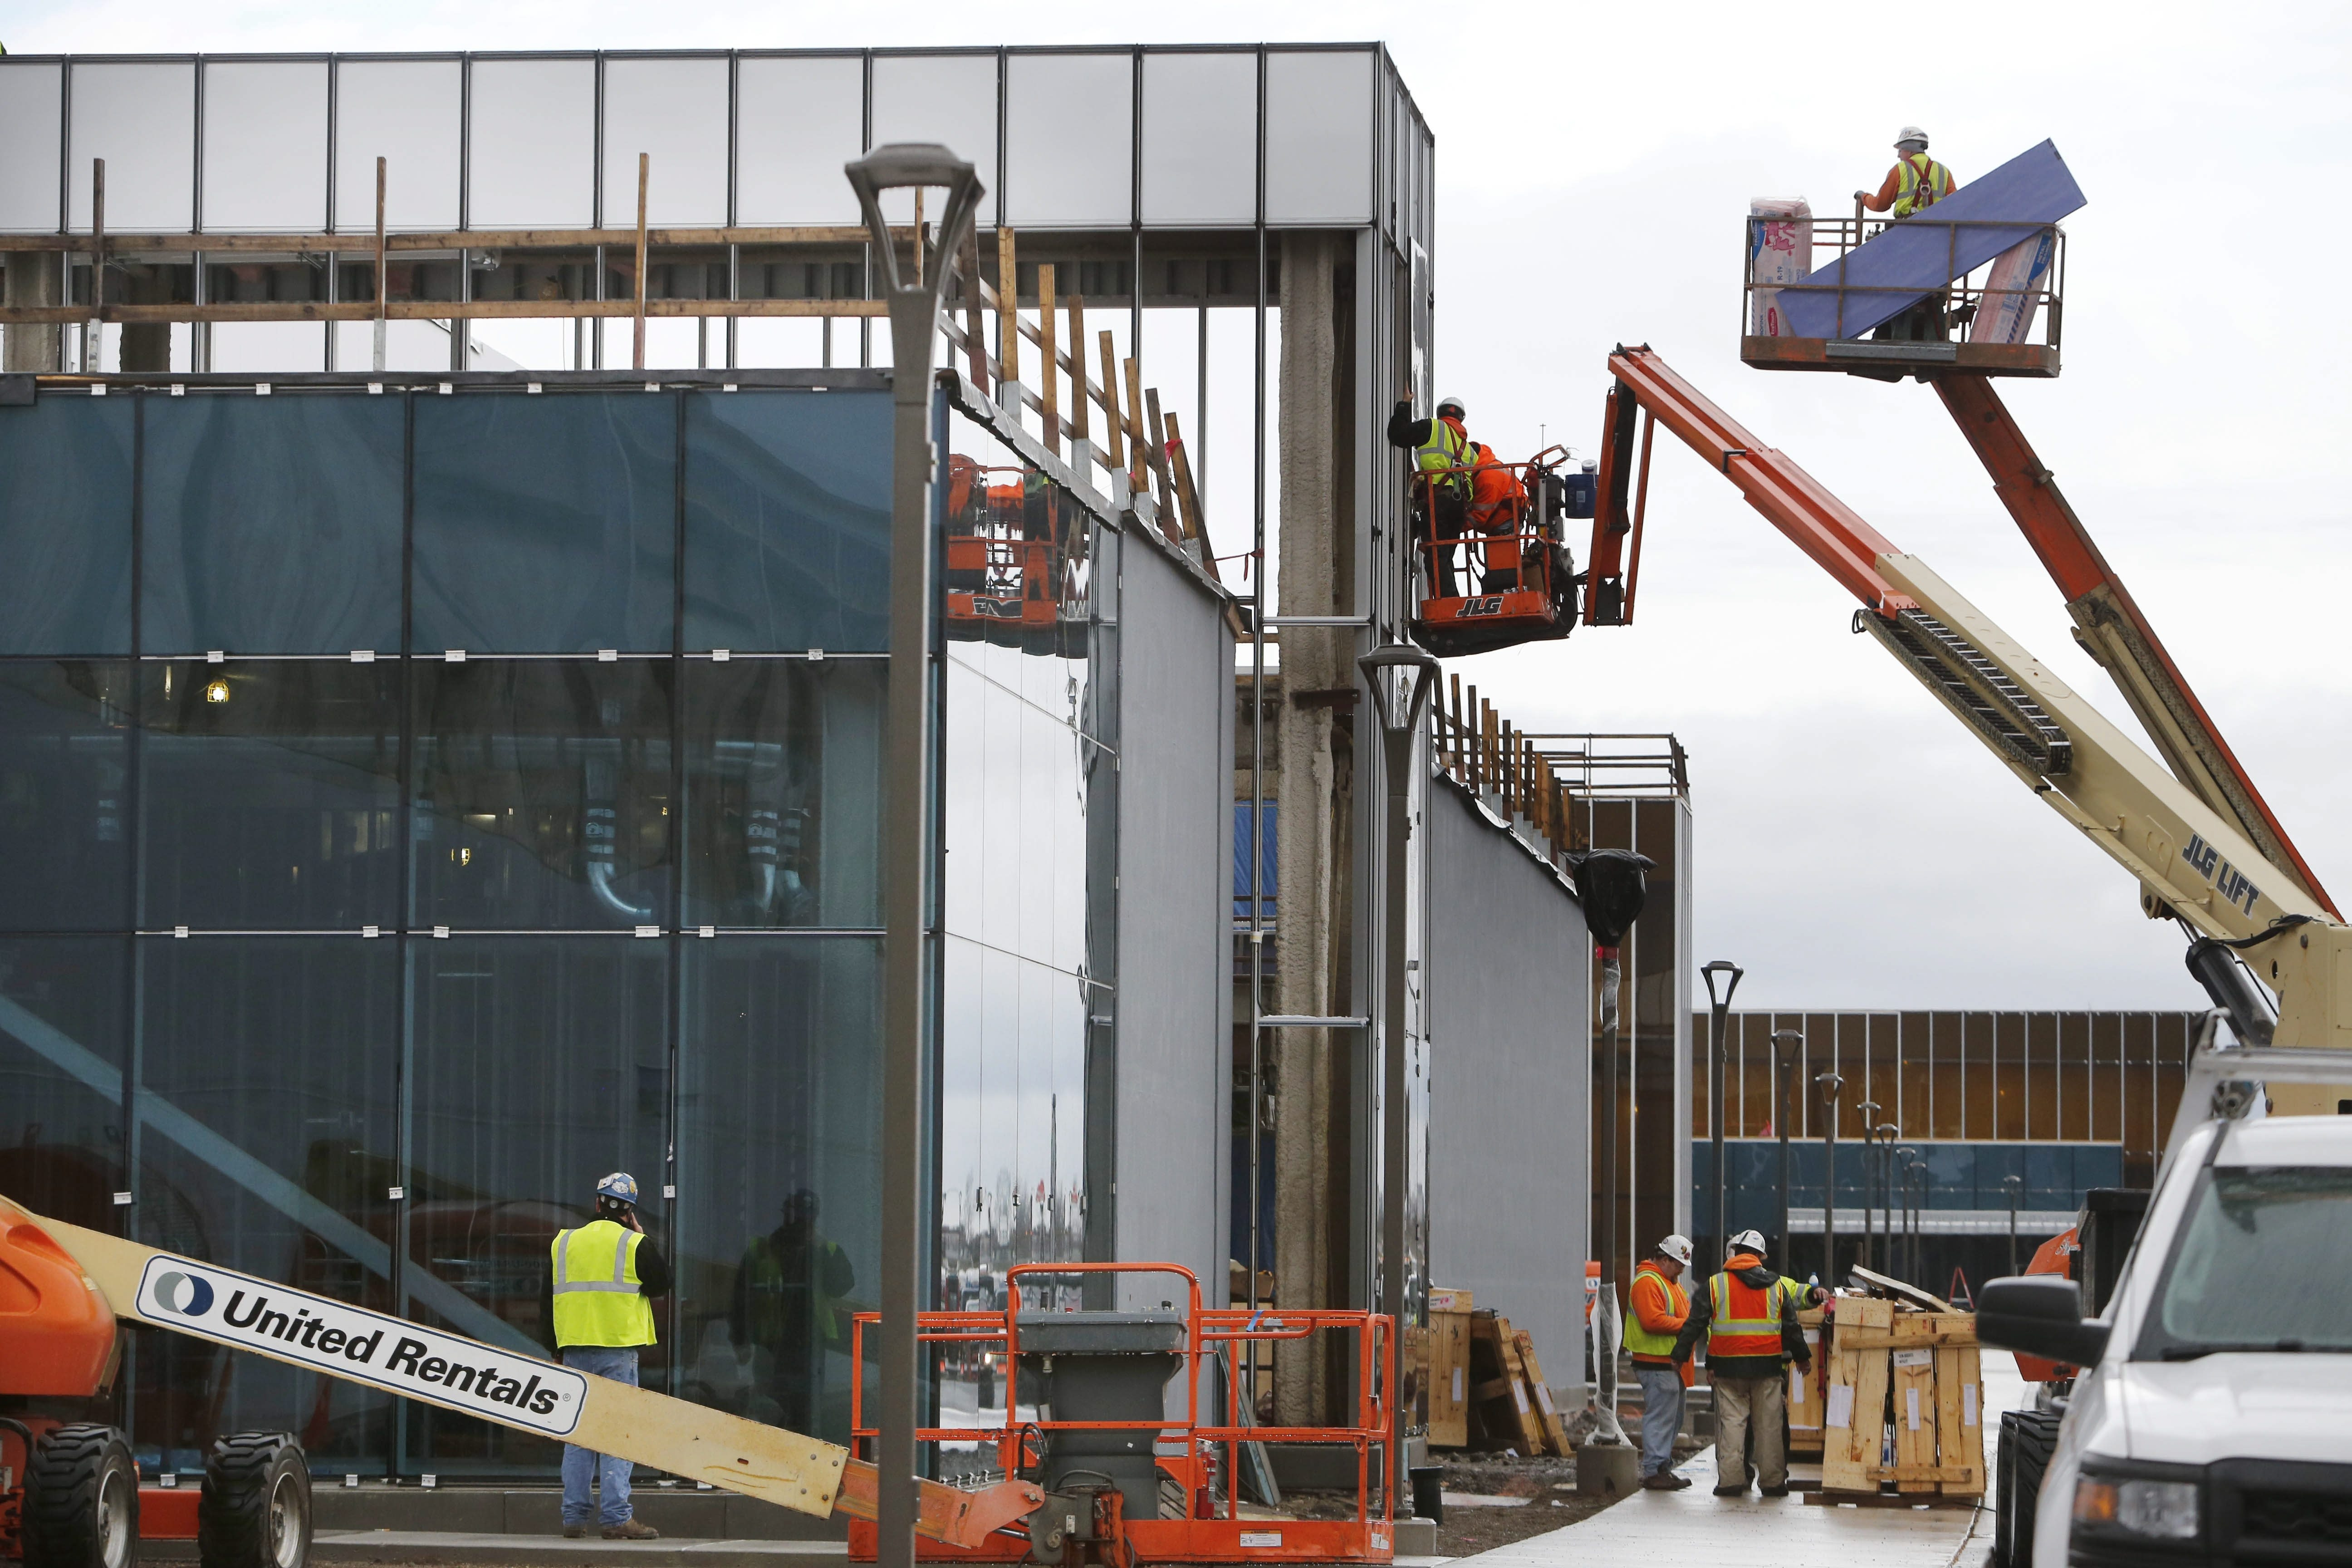 Workers in lifts outside a portion of the enormous Solar City facility under construction at RiverBend on Dec. 22. (Derek Gee/News file photo)